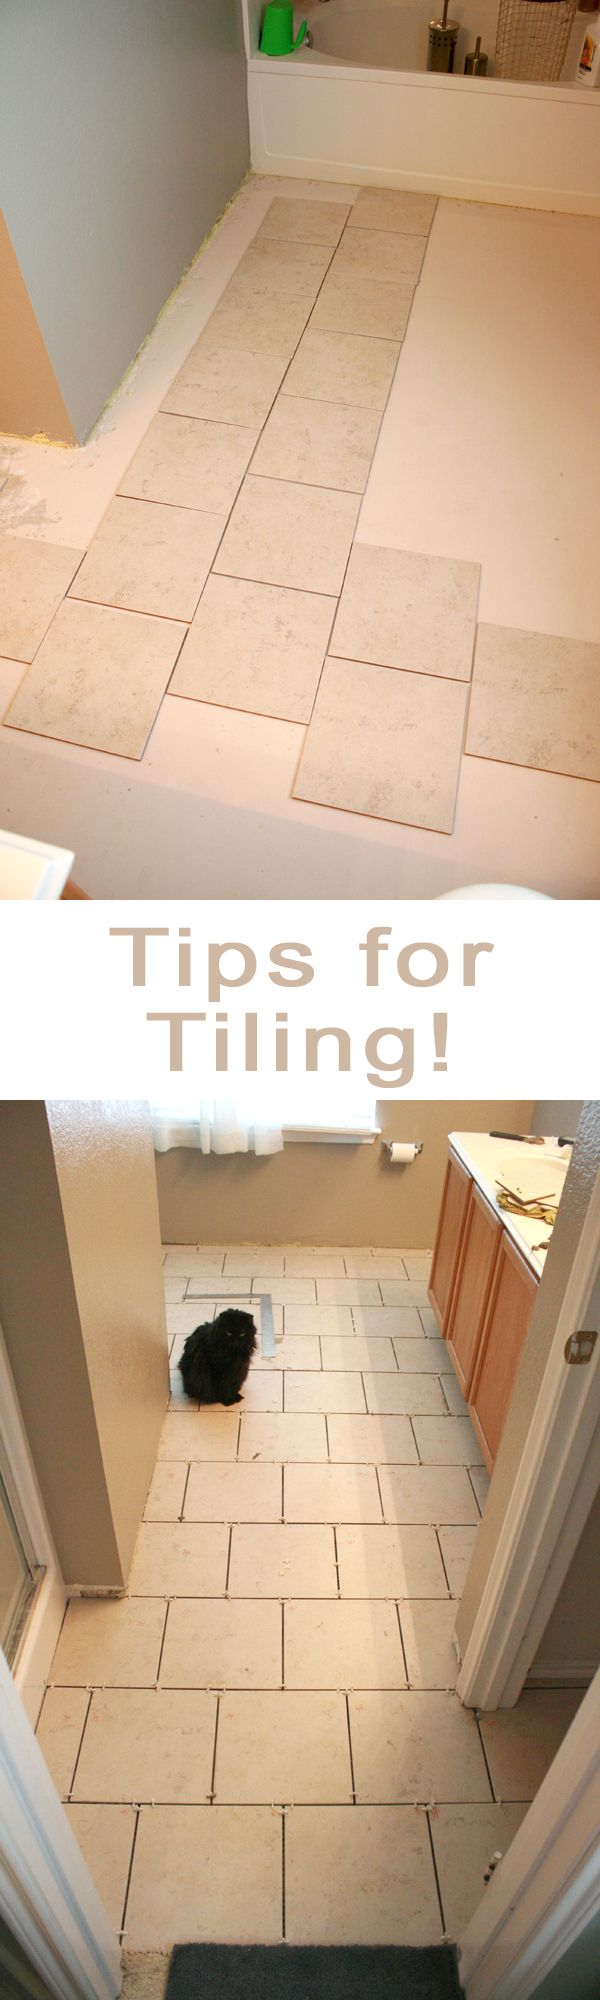 Great Simple Tips For Tiling Your Floors DIY! When I Get The Courage.